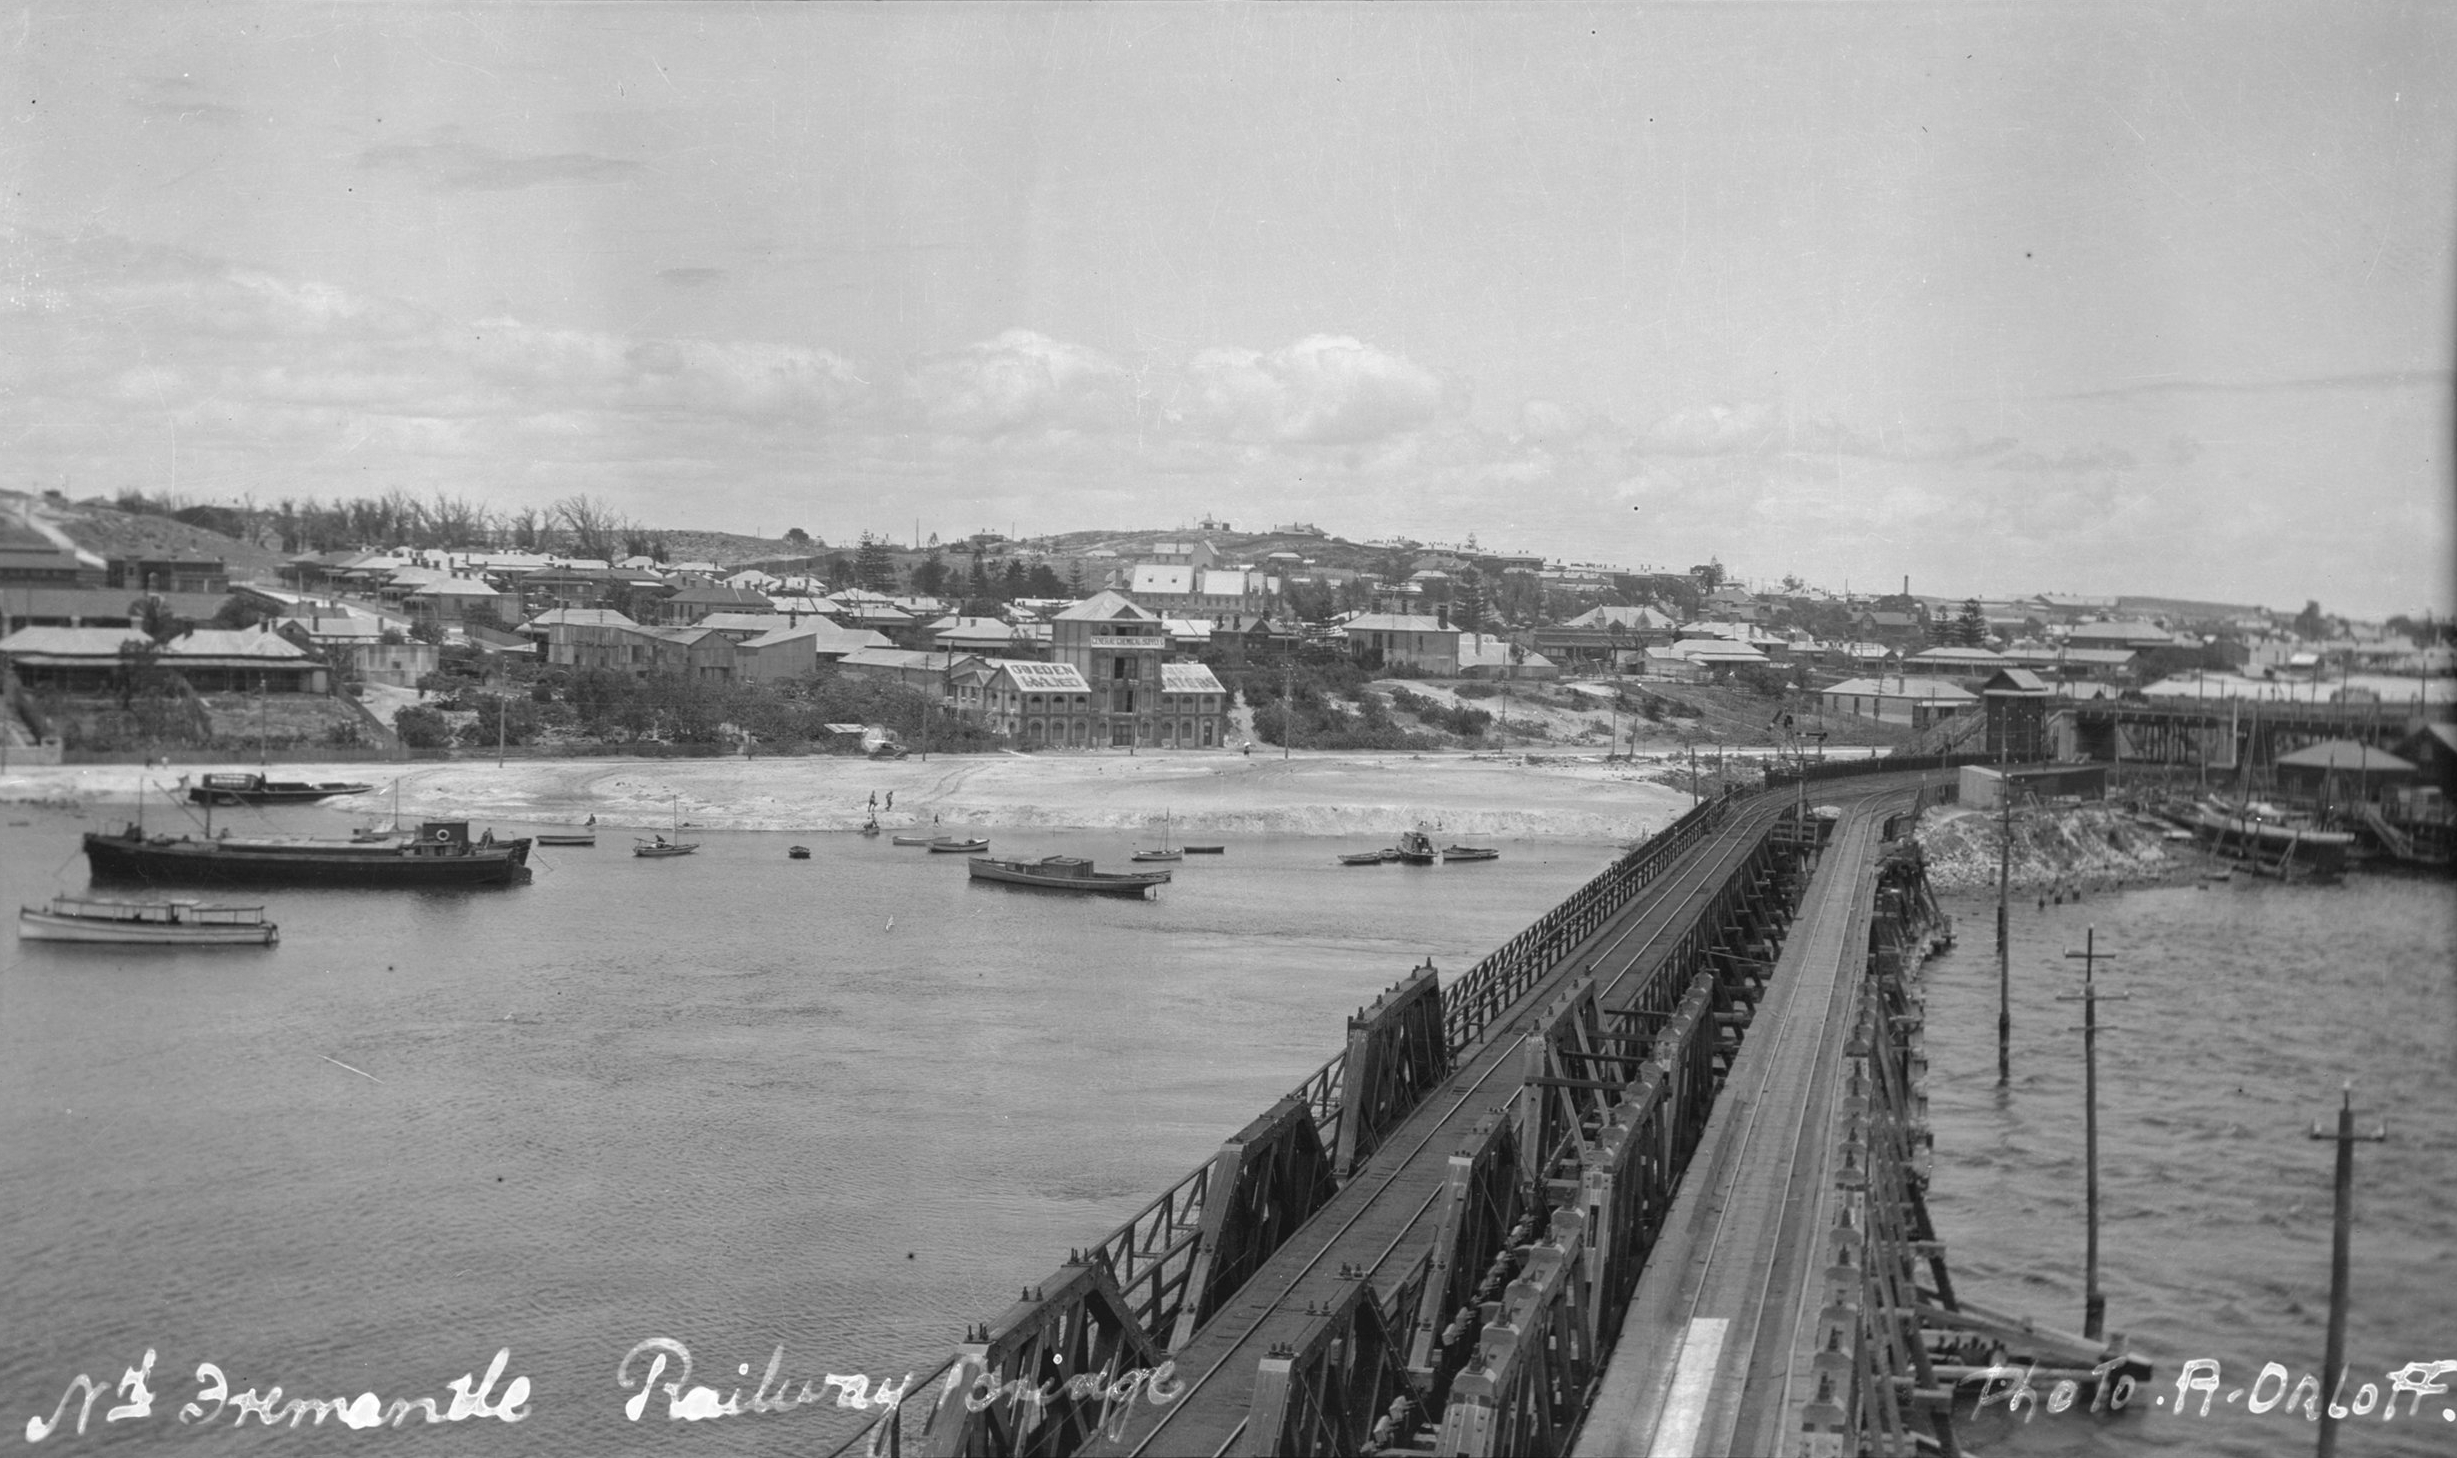 Fremantle Rail Bridge where Ruby Yen's body was dumped. Photographed two years later in 1927. Courtesy of the State Library WA